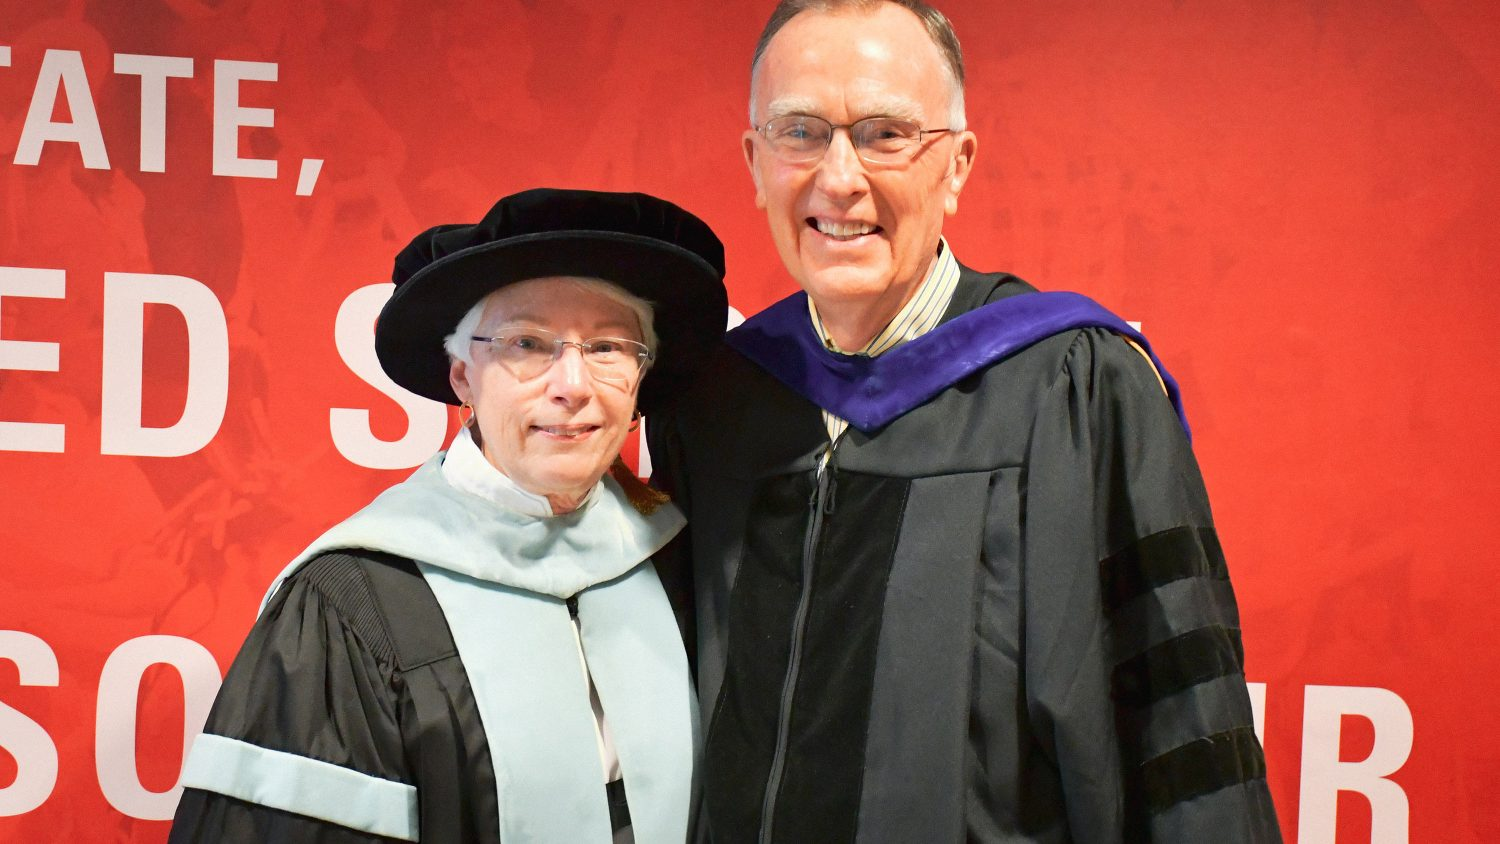 Ed Gerler with Dean Mary Ann Danowitz at the May 2019 graduation